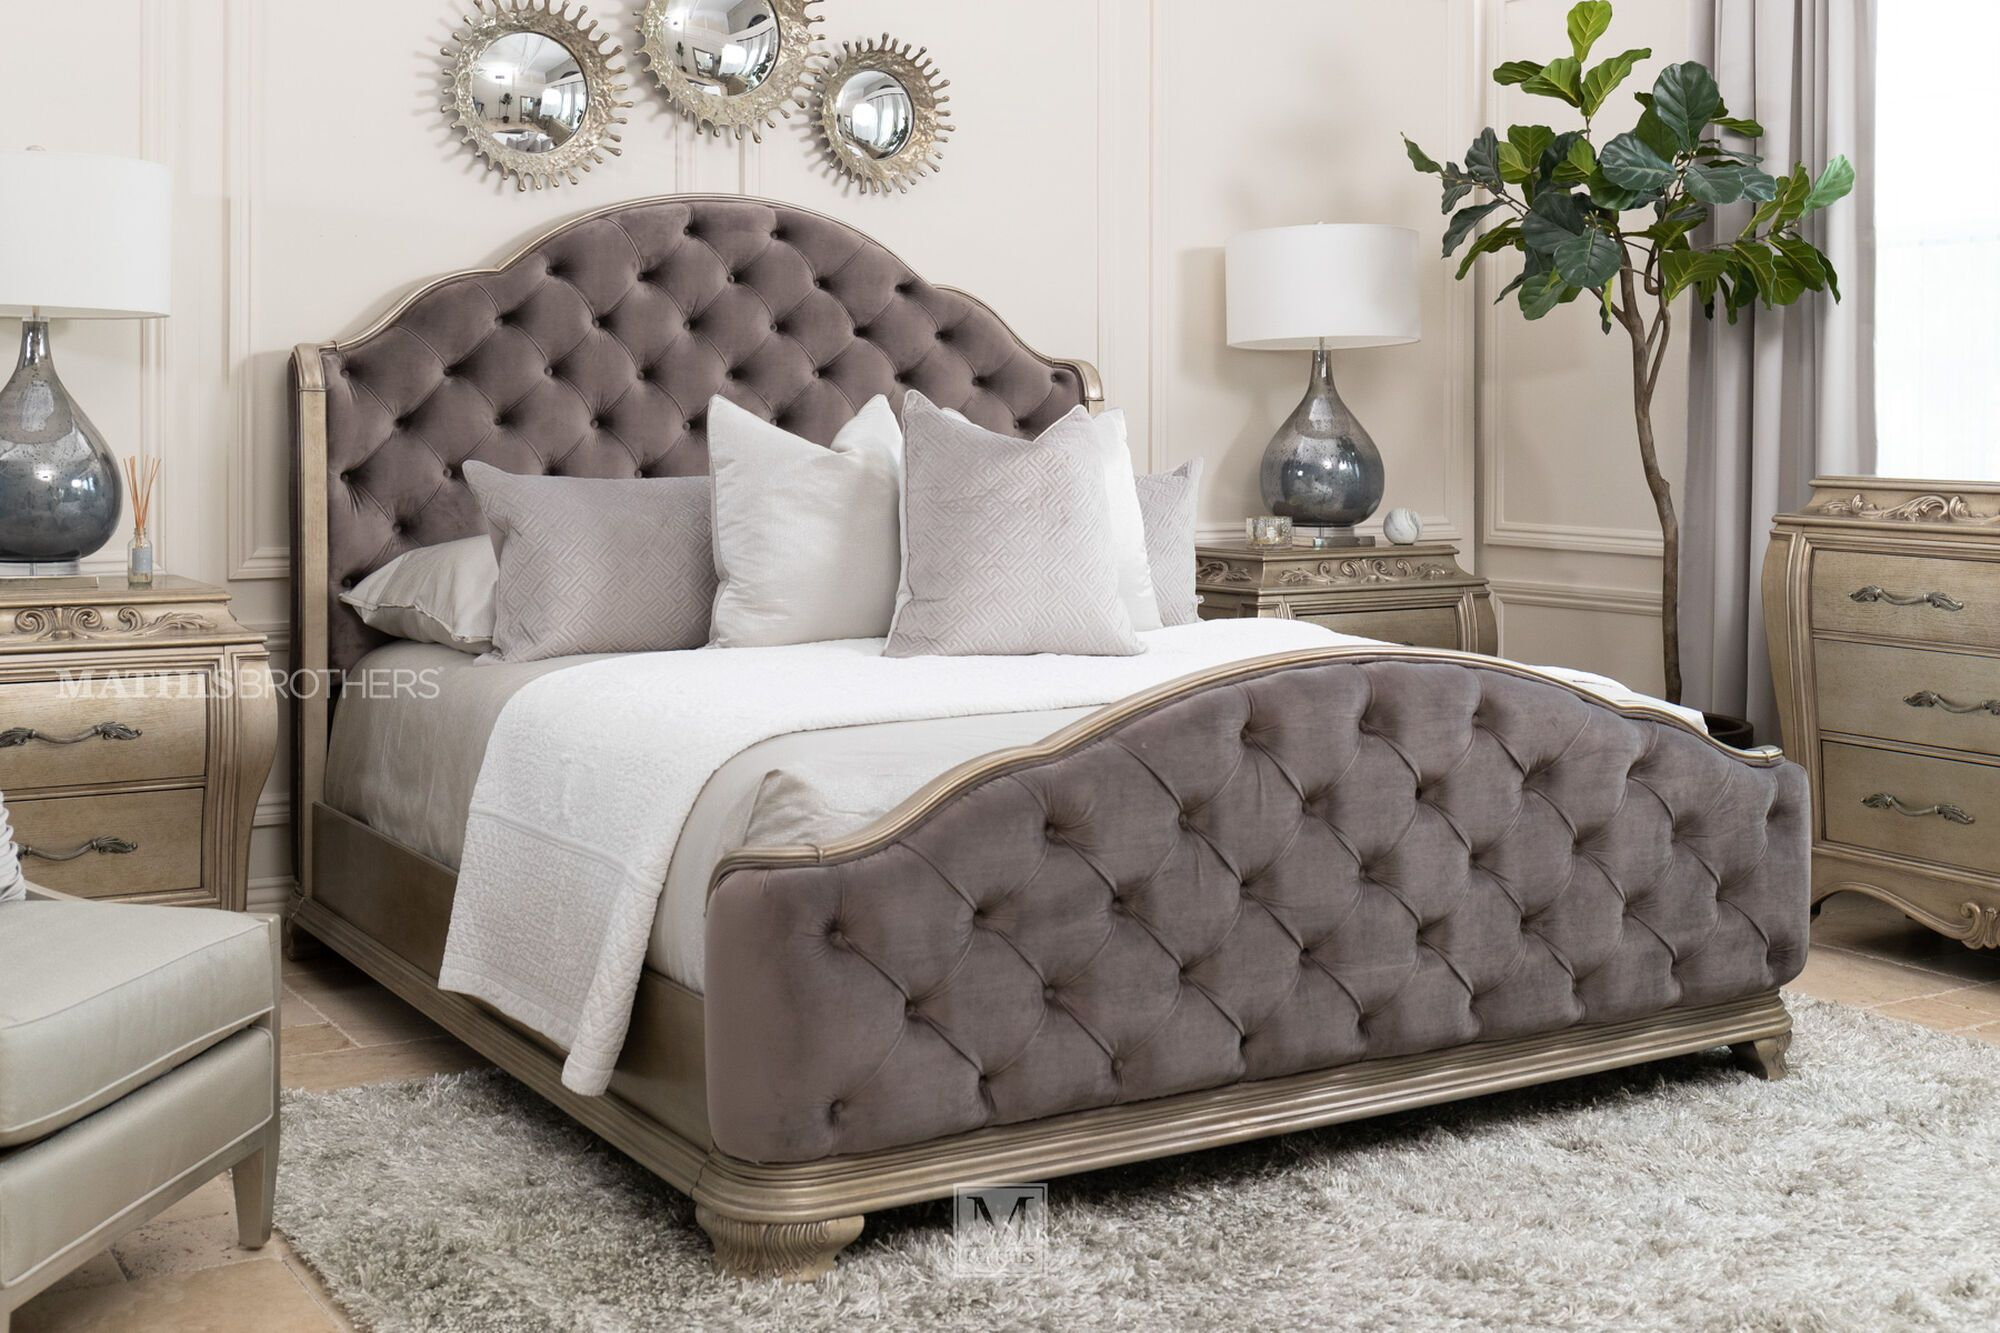 Contemporary Button Tufted Arched Panel Bed In Gray Mathis Brothers Furniture Mathis Brothers Furniture Bedroom Furniture Beds Panel Bed